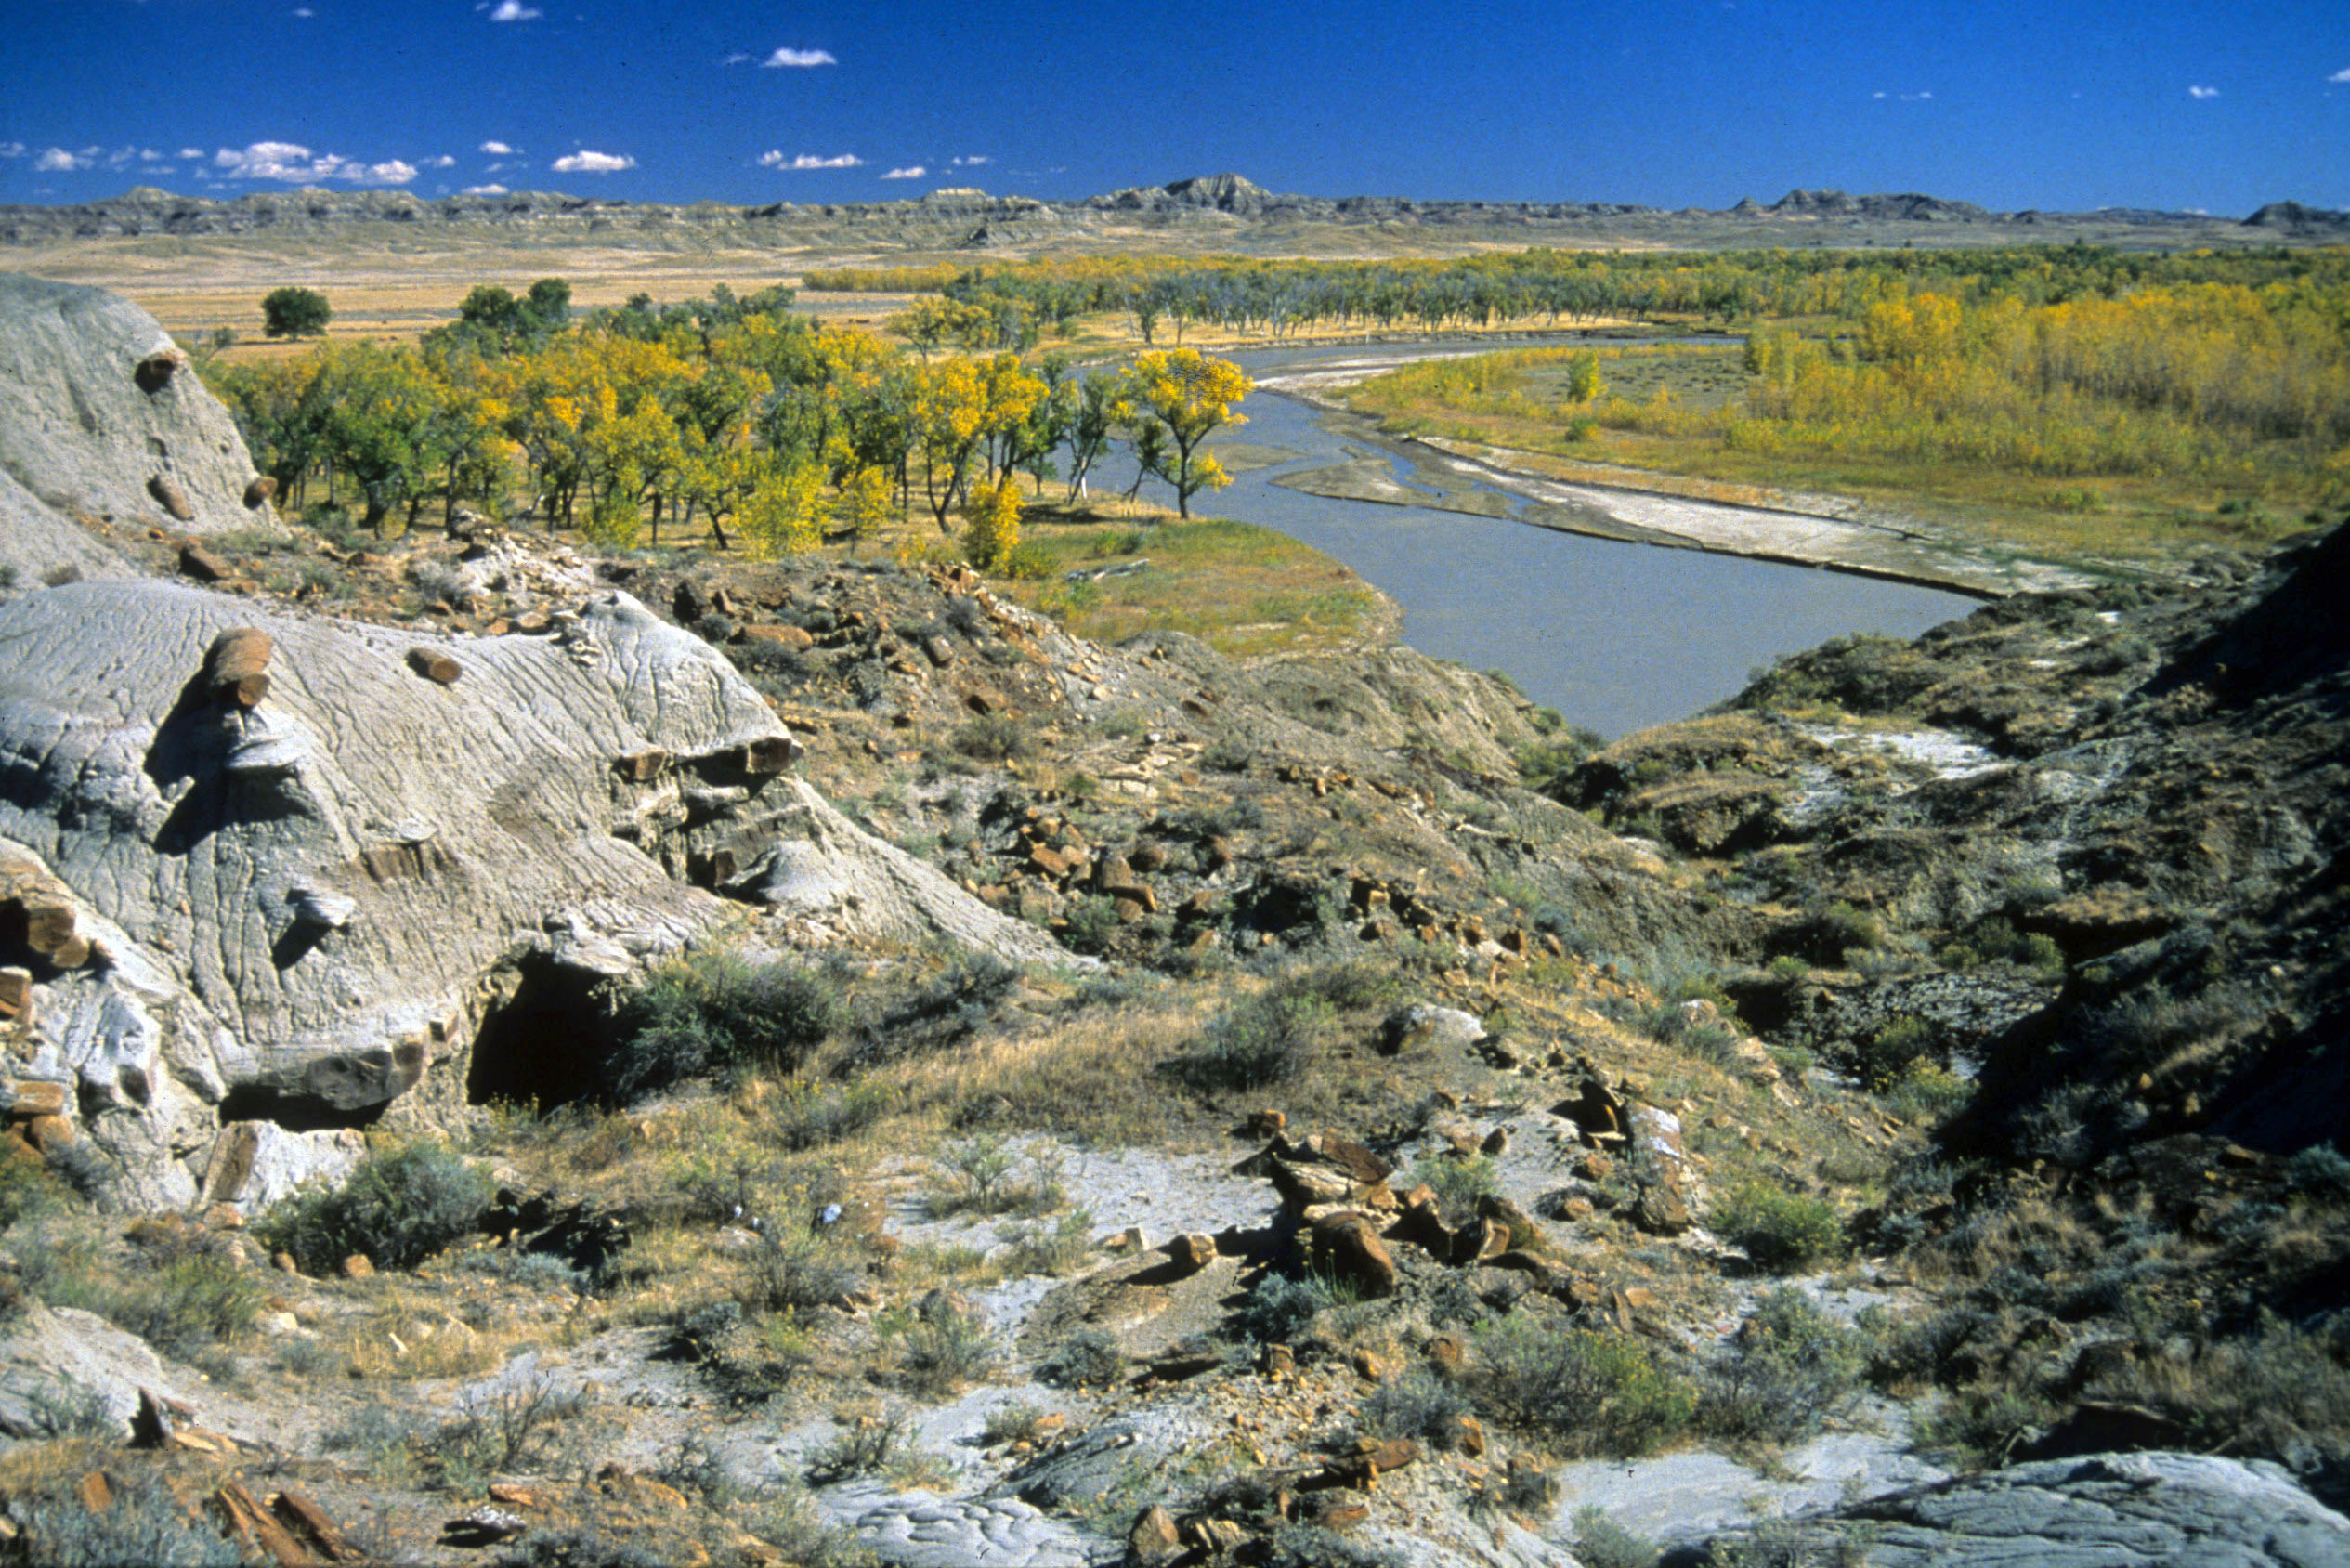 The Powder River meanders through remote prairie lands southeast of Miles City